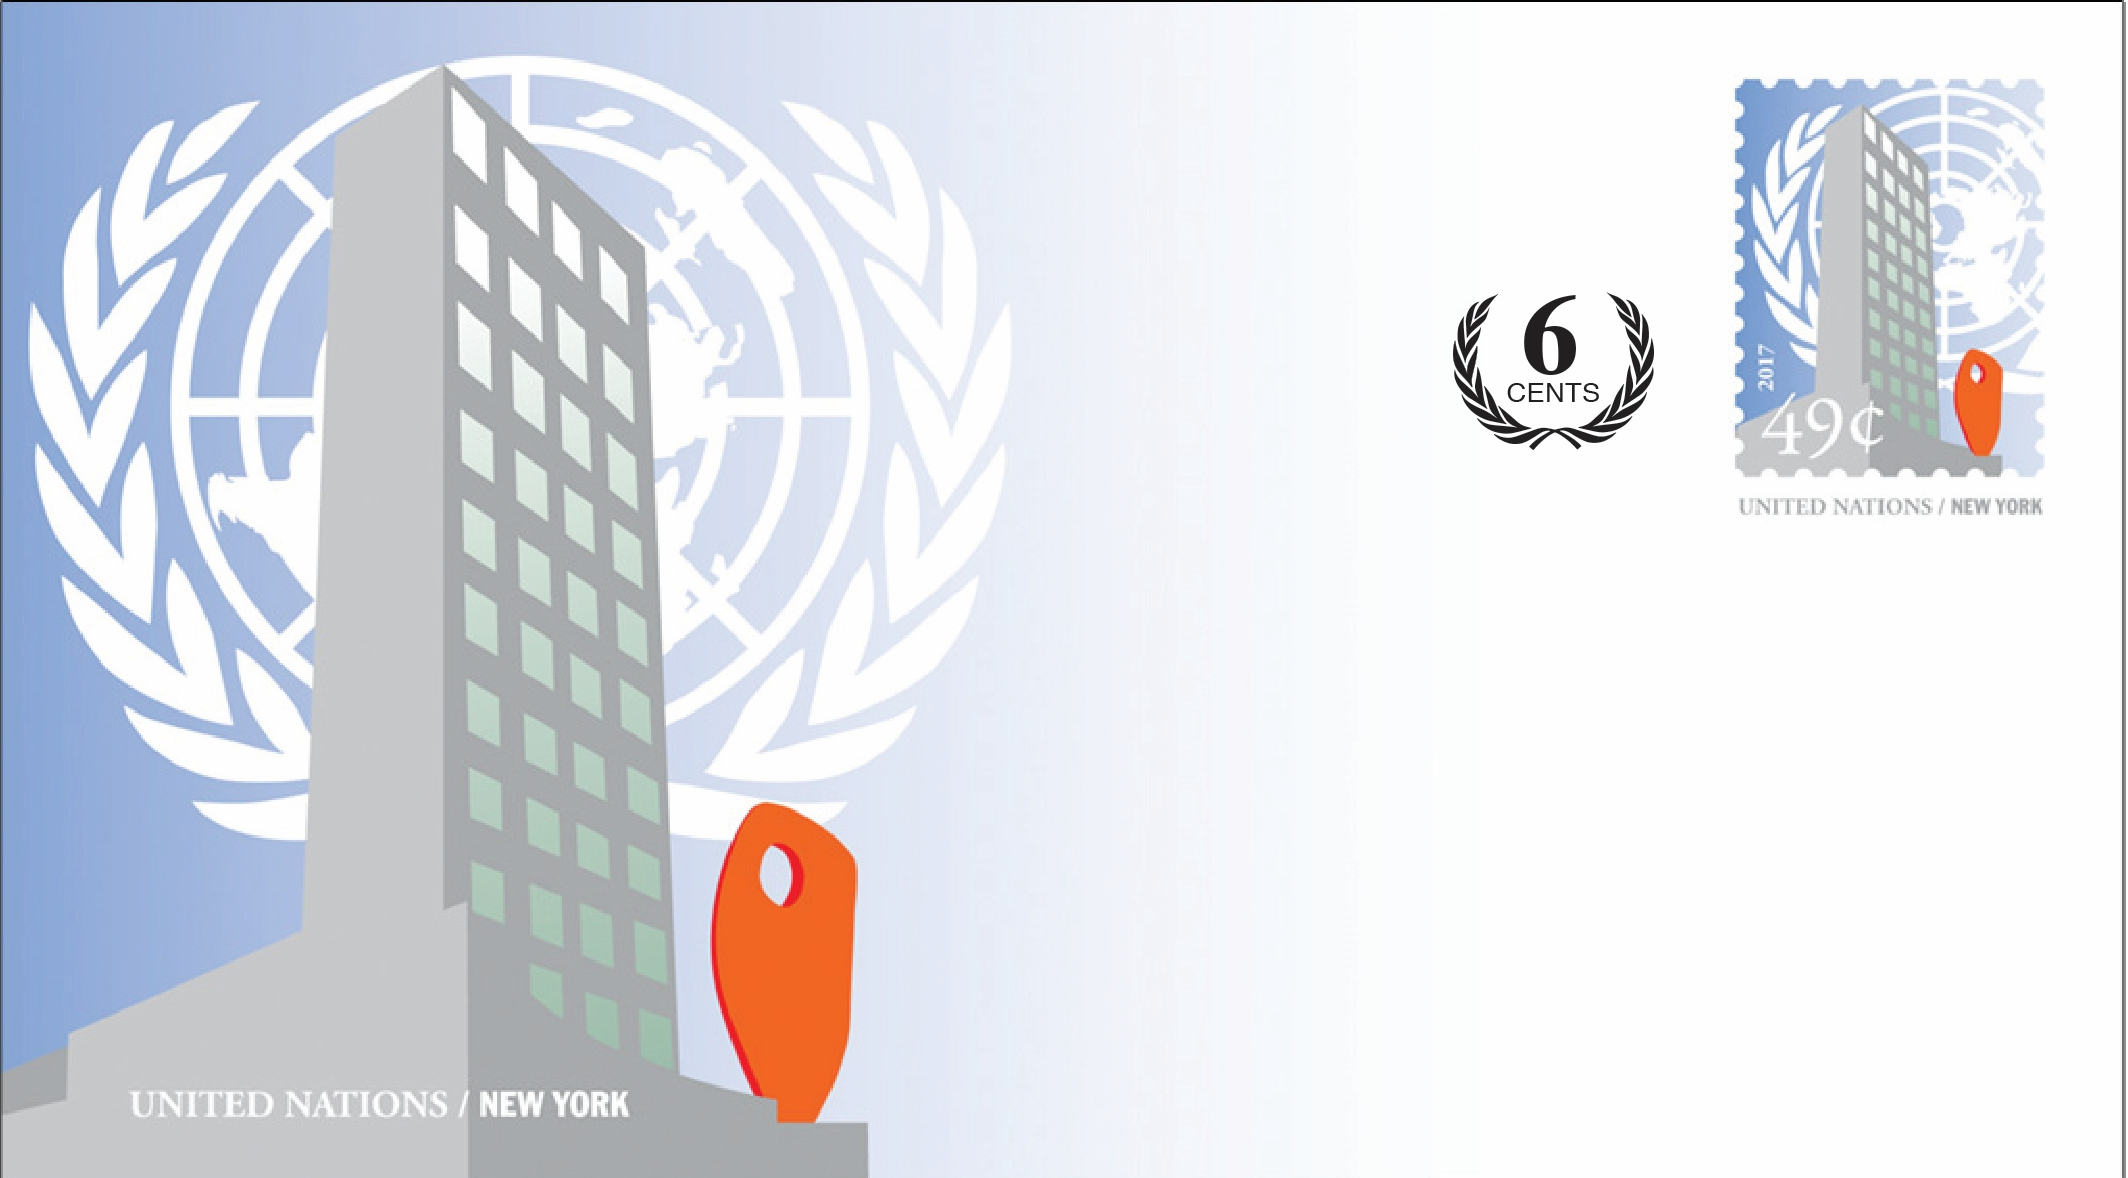 United Nations Headquarters (New York) - Revalued Envelope, 55 cents (February 1, 2019)